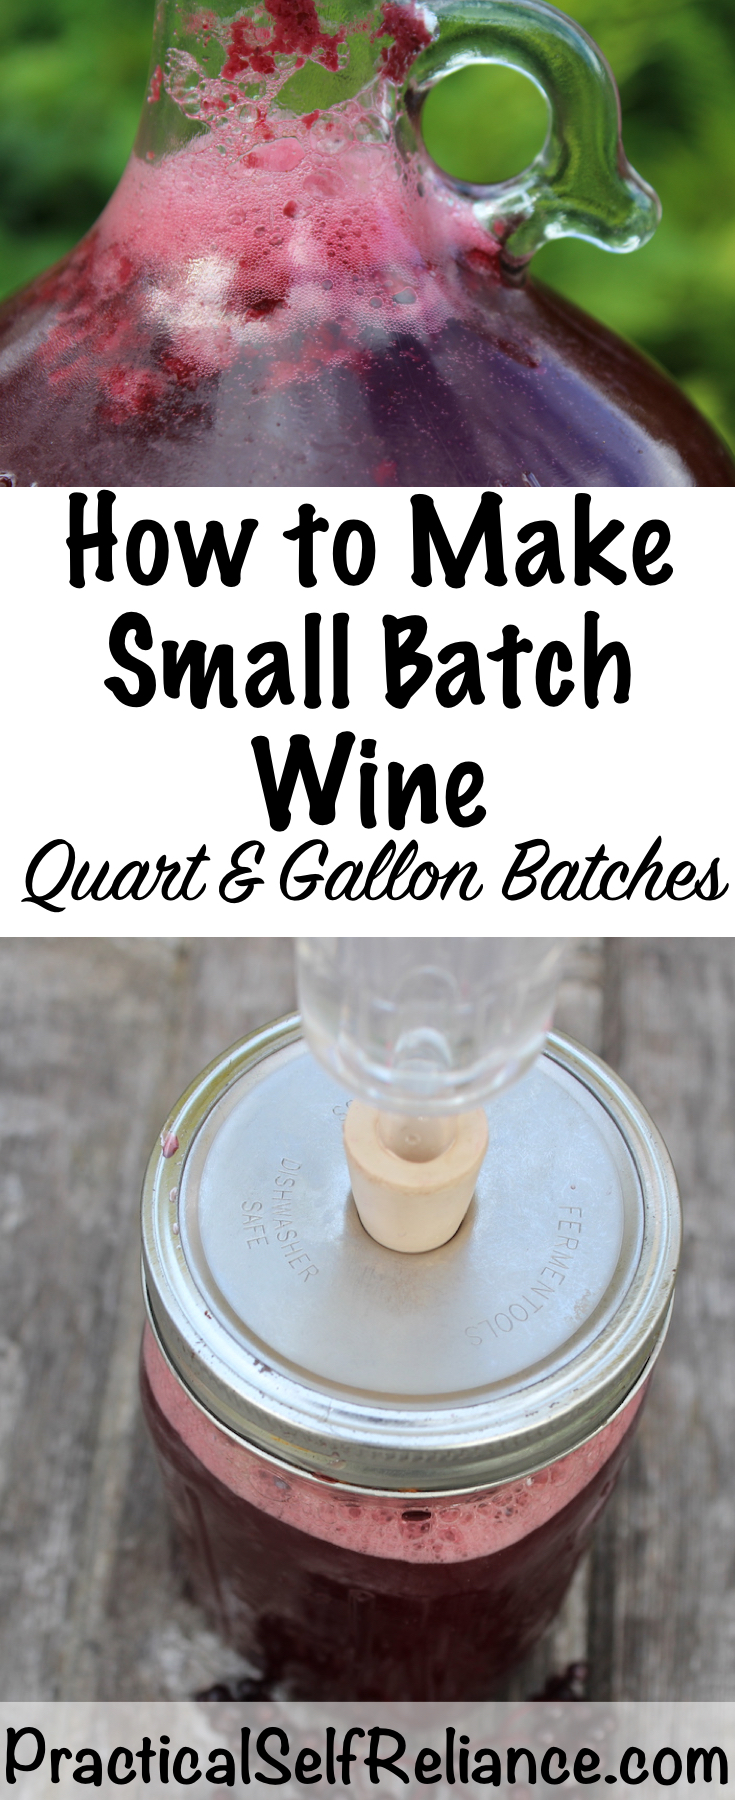 How to Make Small Batch Wine ~ Batch sizes from 1 quart to 1 gallon #homemade #wine #winemaking #diywine #homebrewing #fermenting #drinks #beverage